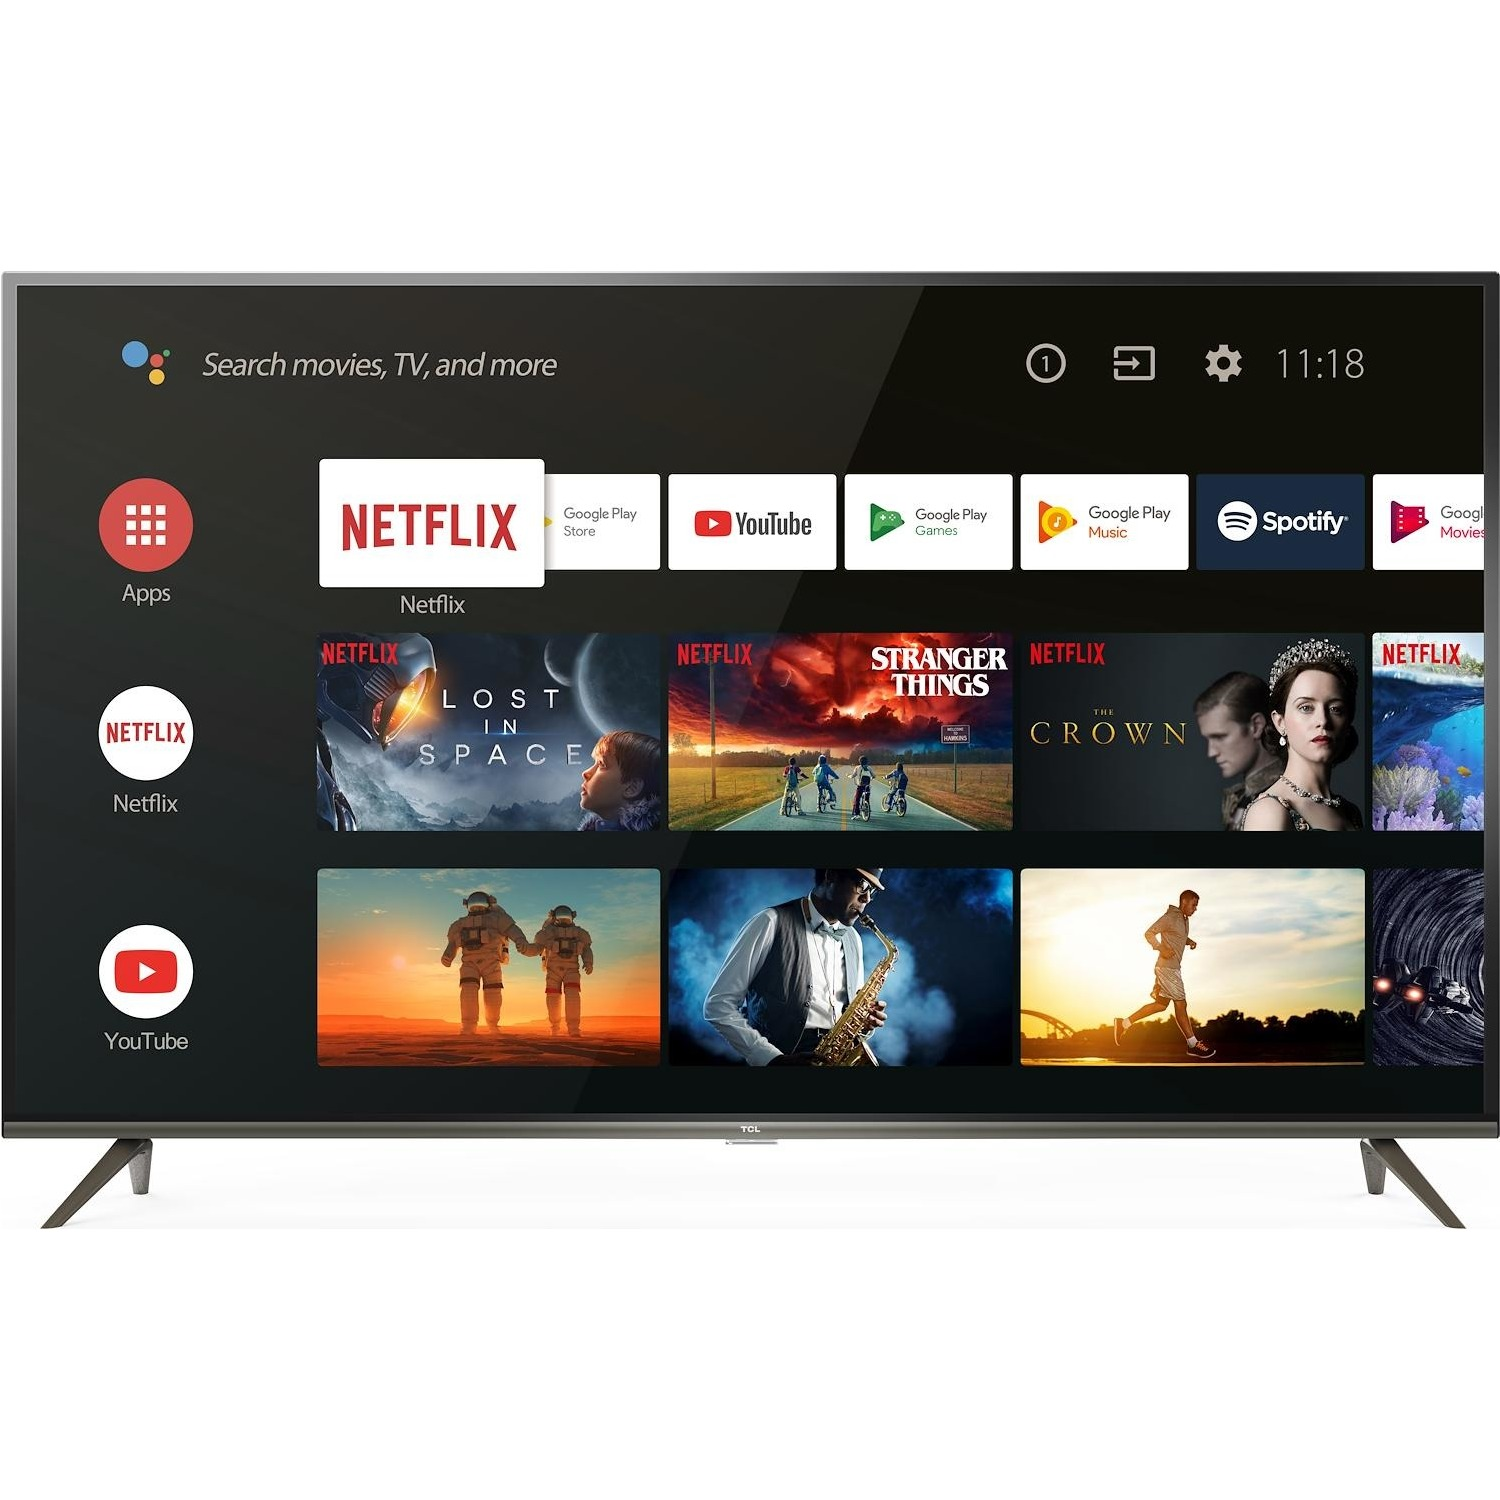 Immagine per TV LED Android 4K UHD TCL 50EP640 da DIMOStore